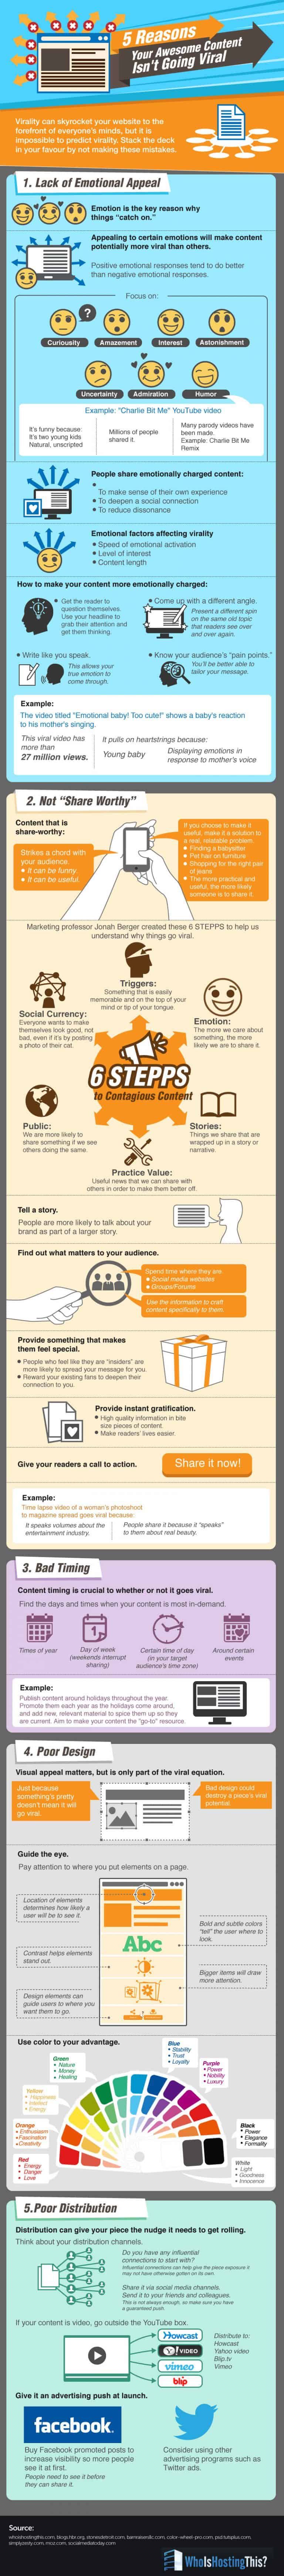 Infographic of reasons why content fails to take off